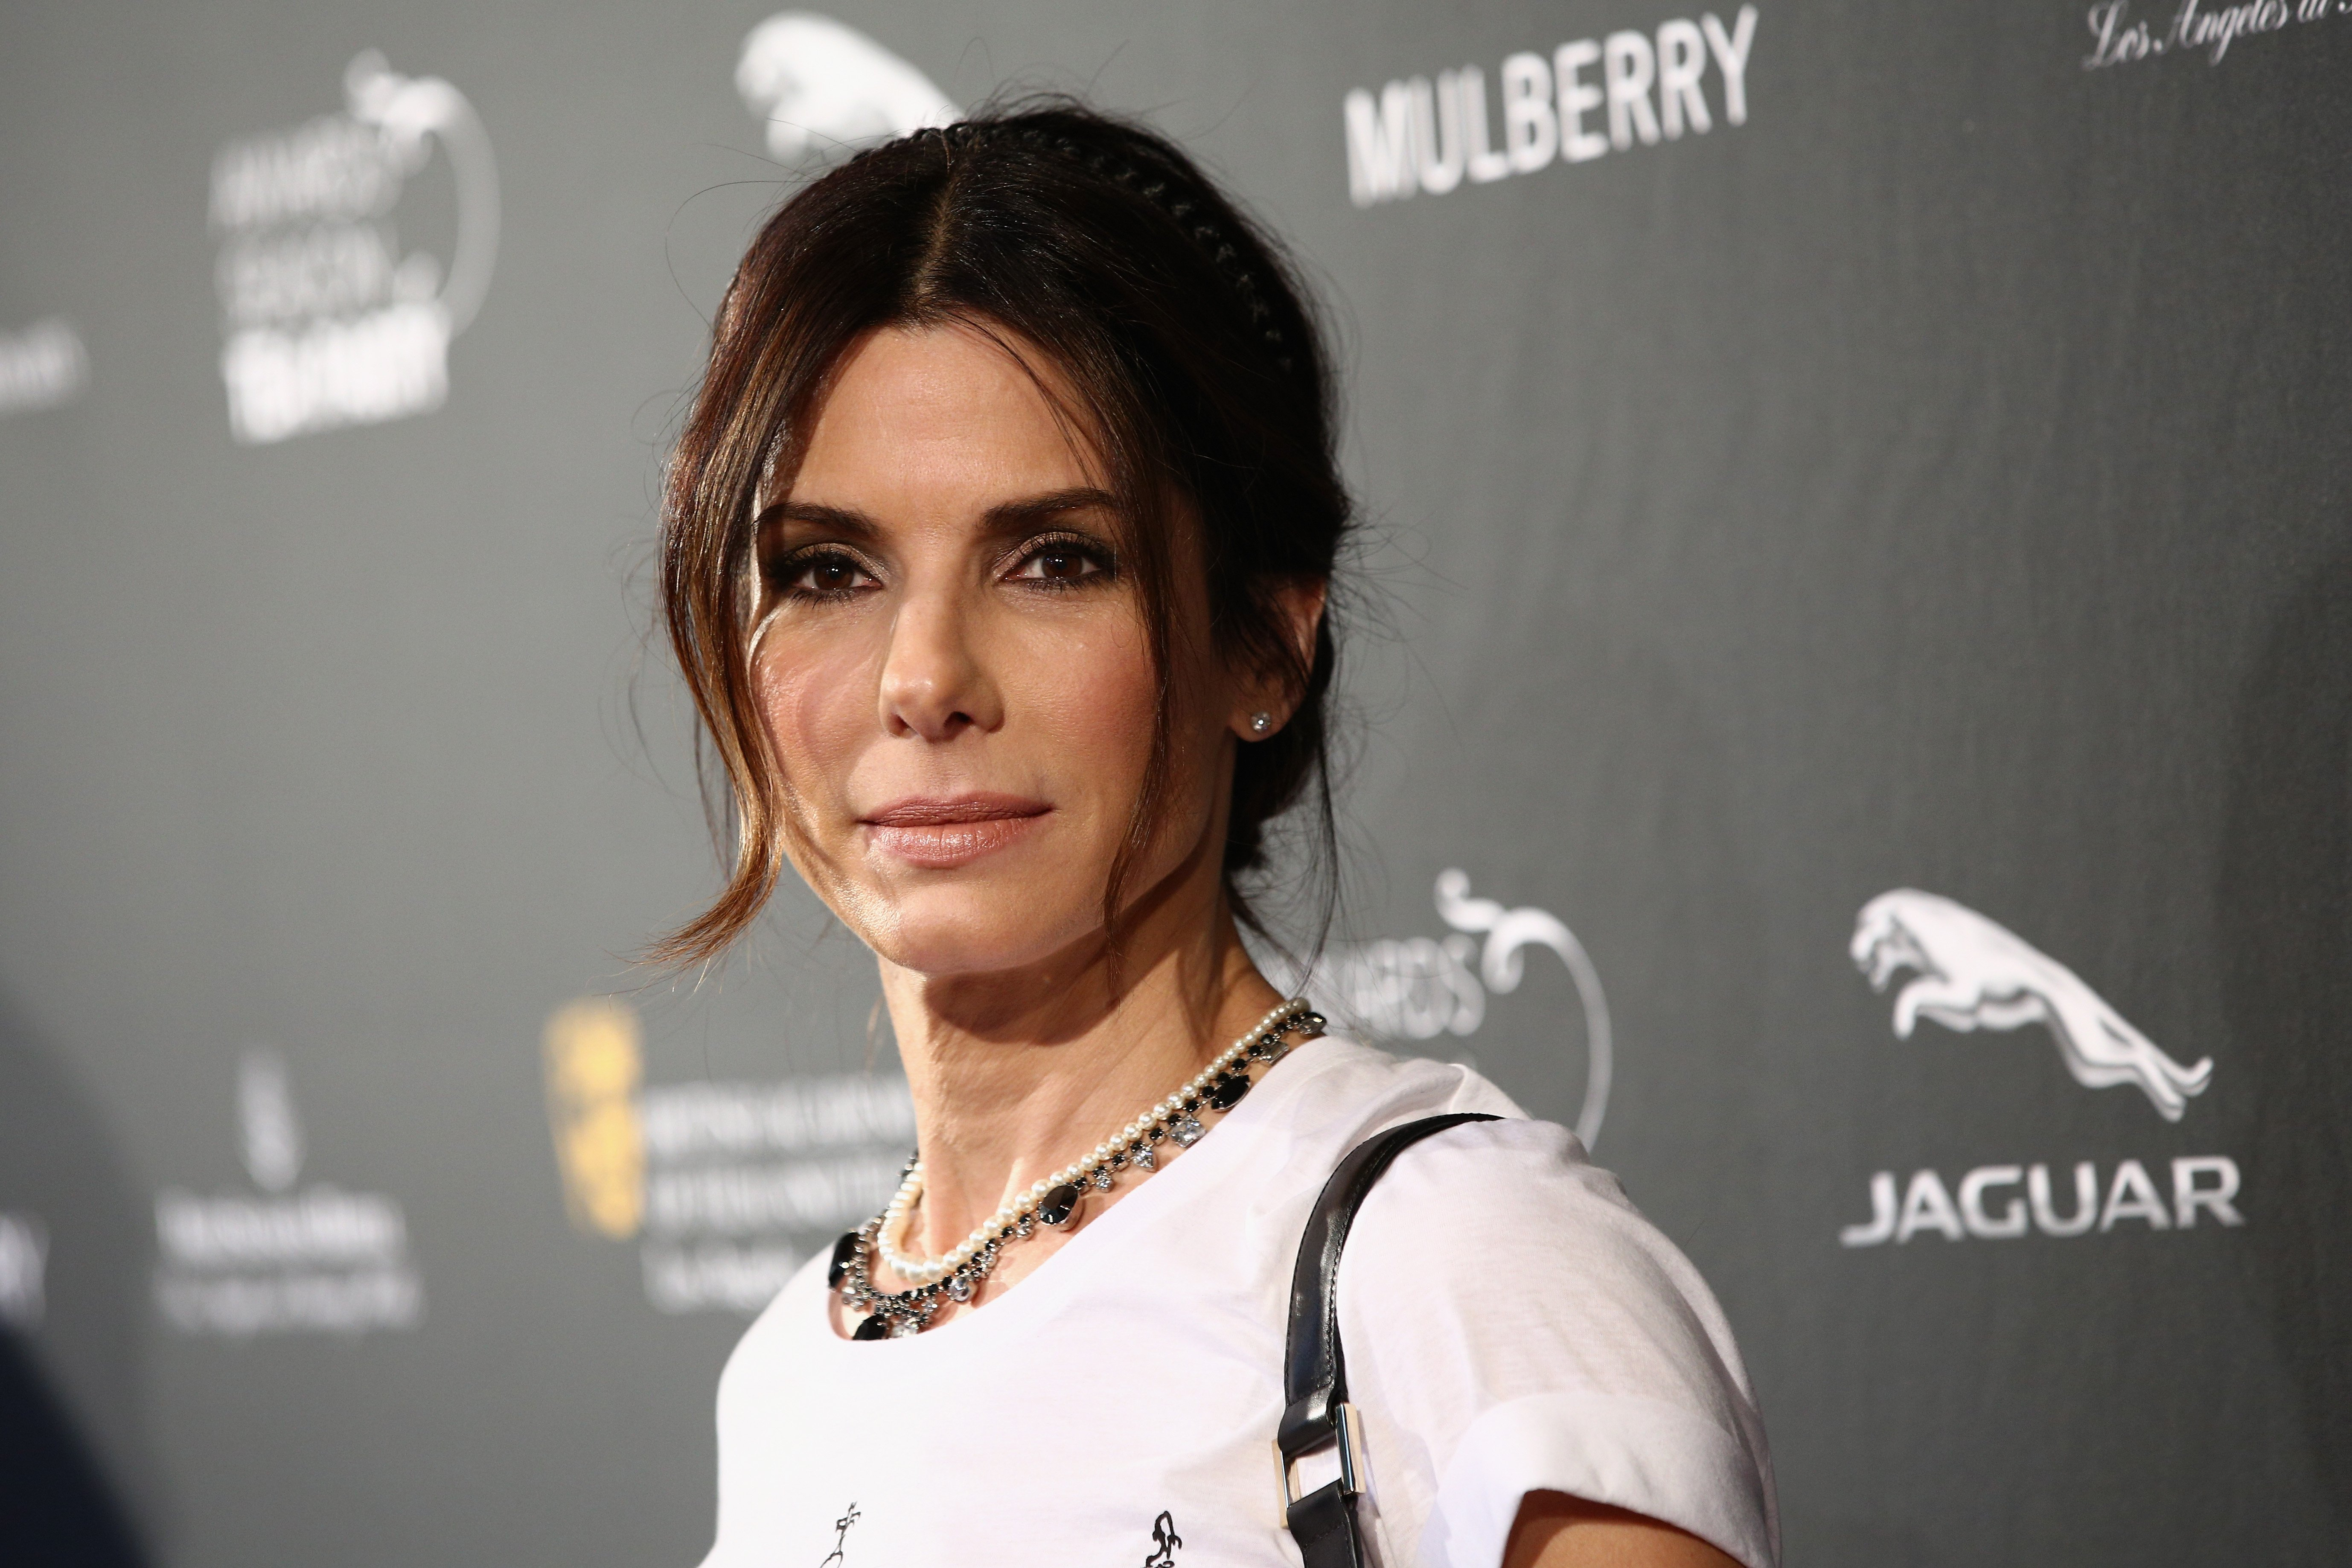 Image Credits: Getty Images / Imeh Akpanudosen | Actress Sandra Bullock attends the BAFTA LA 2014 Awards Season Tea Party at the Four Seasons Hotel Los Angeles at Beverly Hills on January 11, 2014 in Beverly Hills, California.